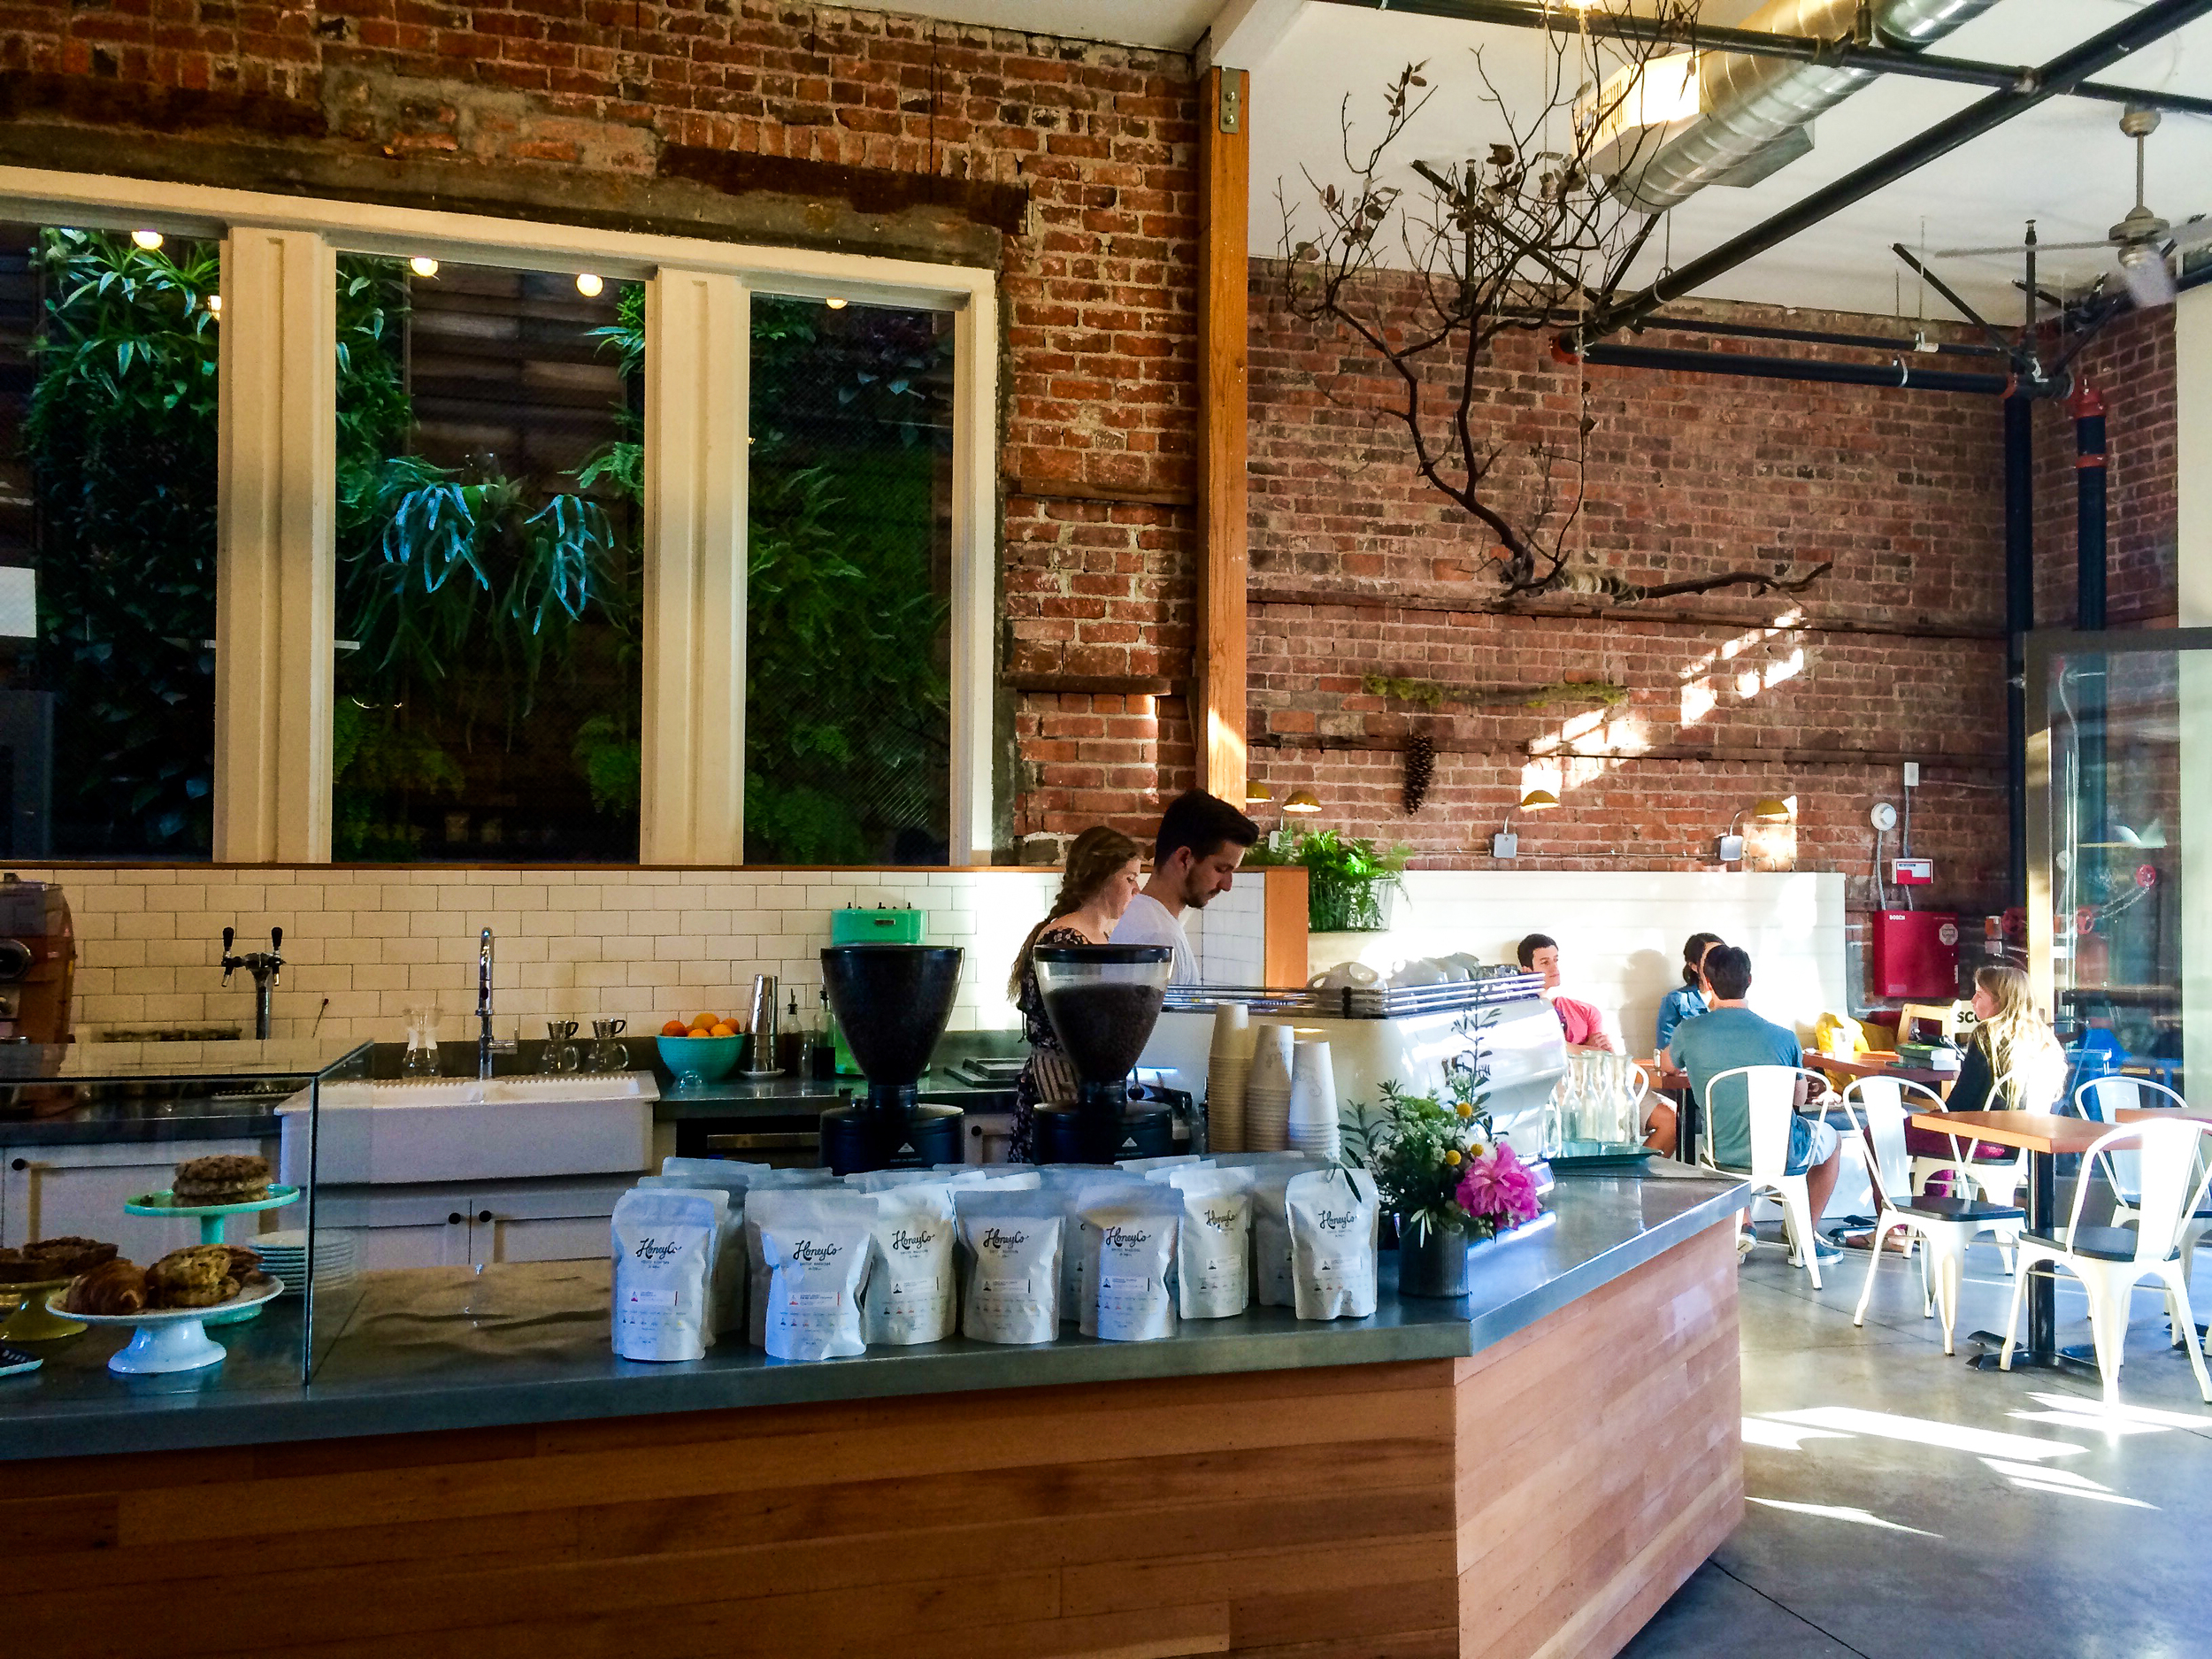 Scotty's Cafe - Go for the homemade almond milk cafe.